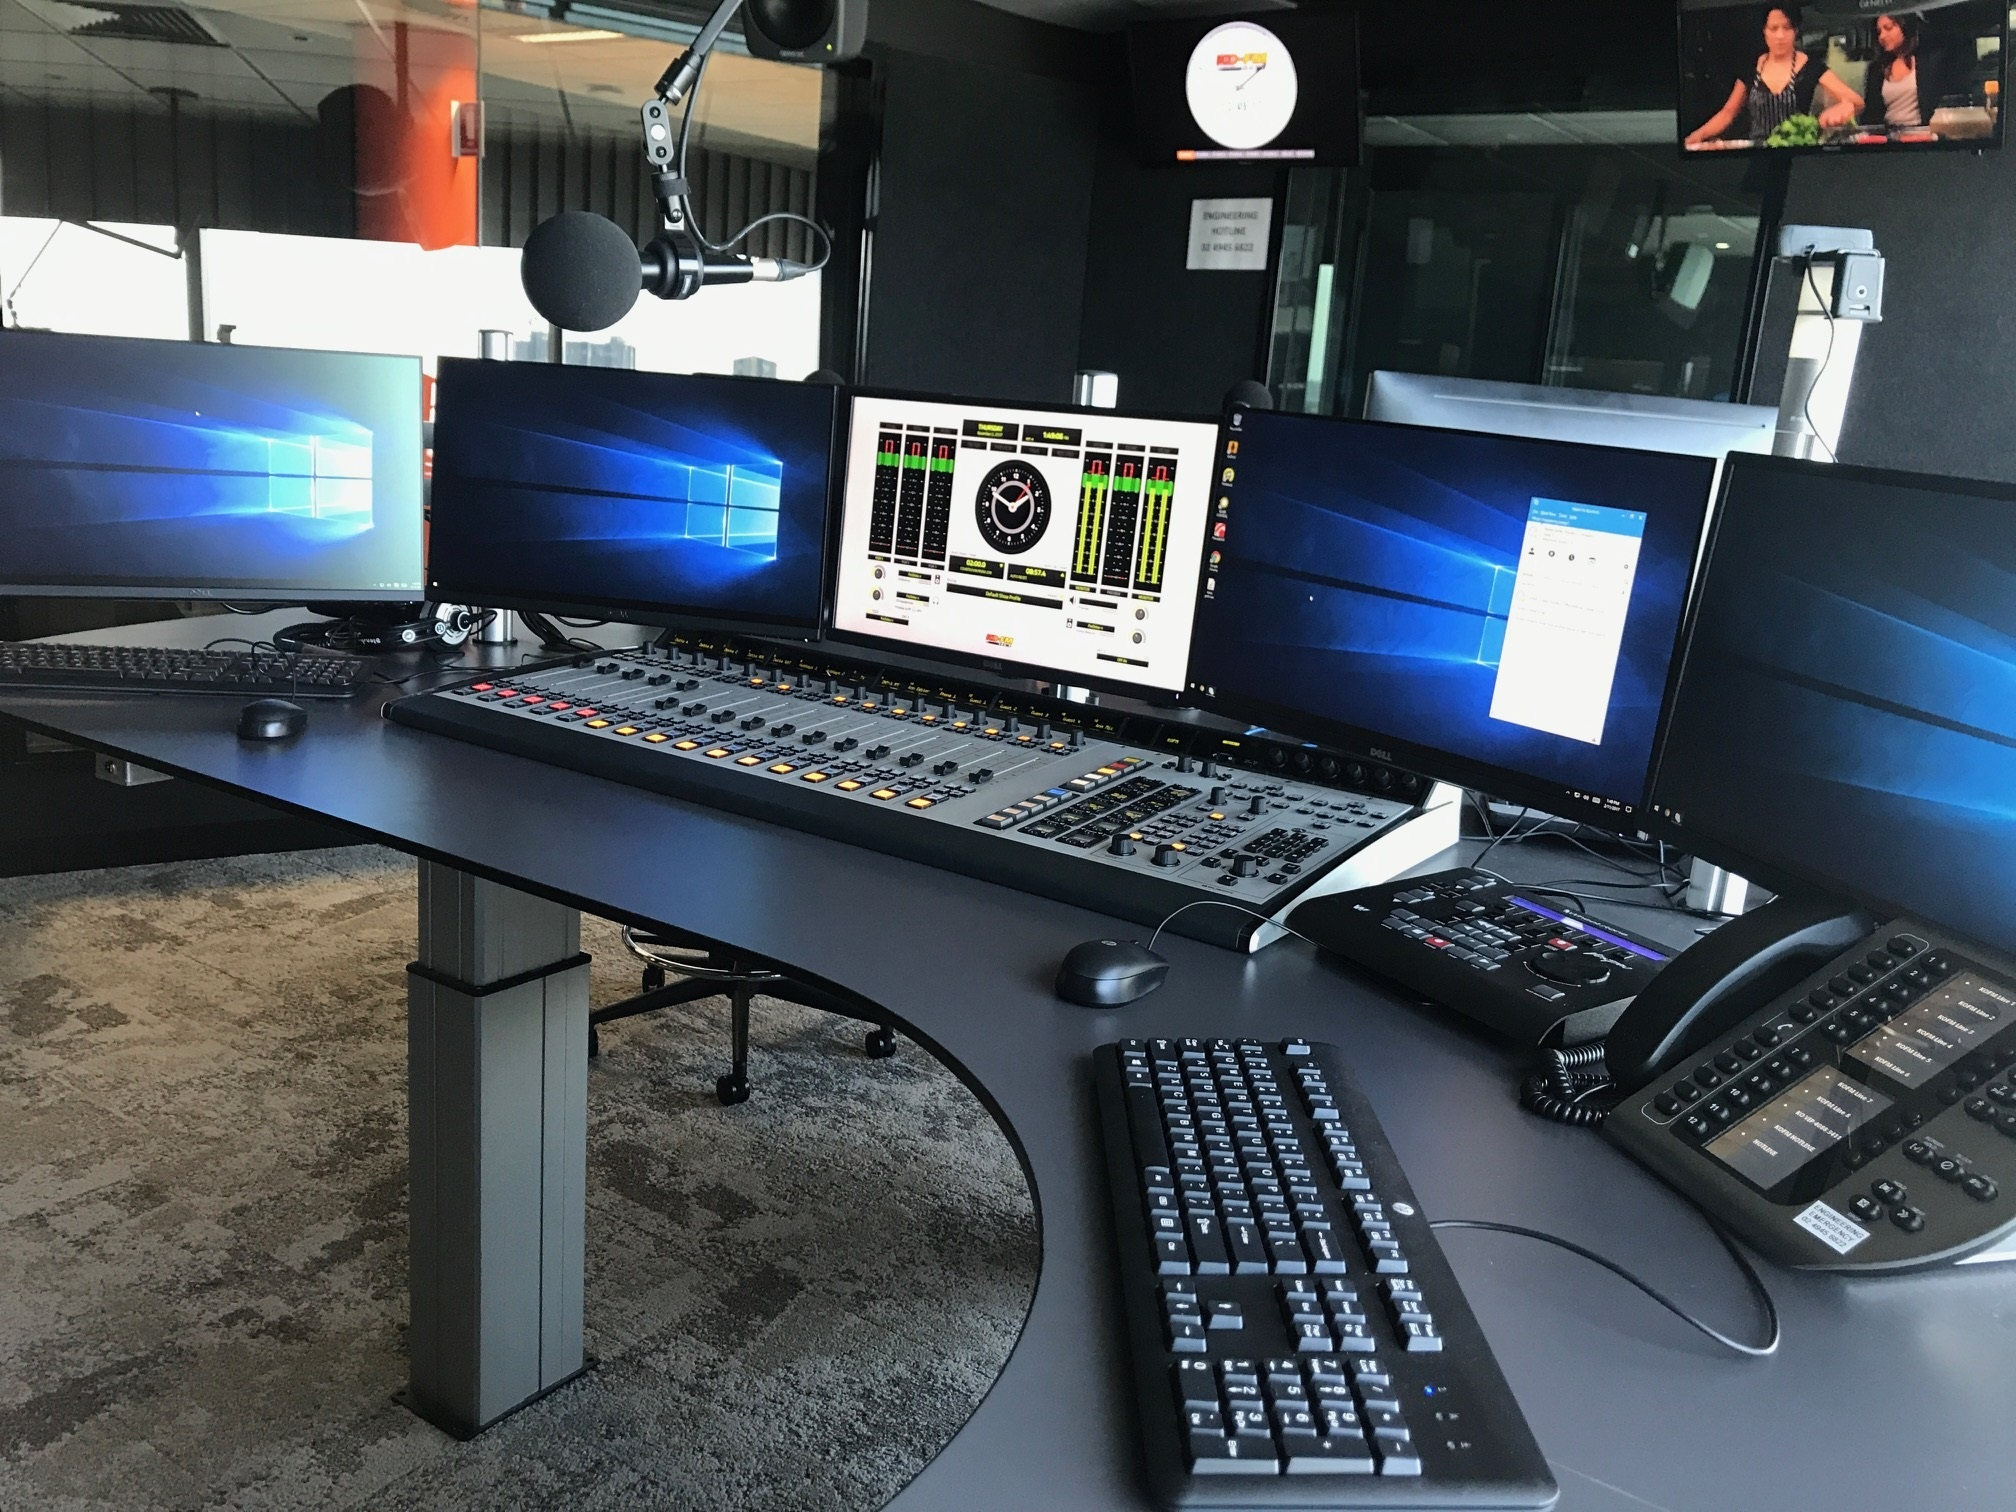 Axia Fusion console at KOFM 102.9